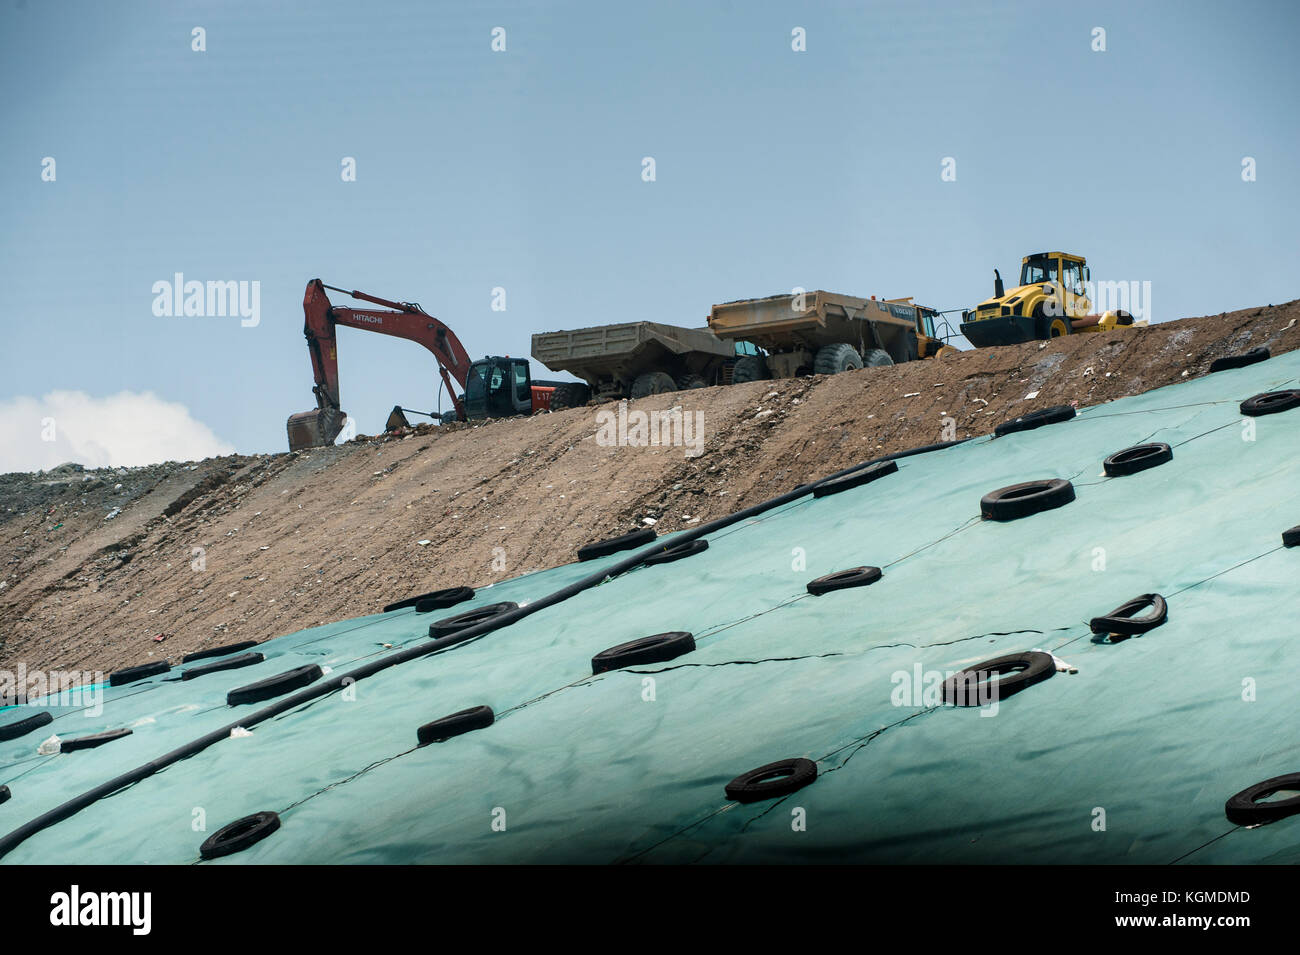 Solid Waste Stock Photos & Solid Waste Stock Images - Alamy